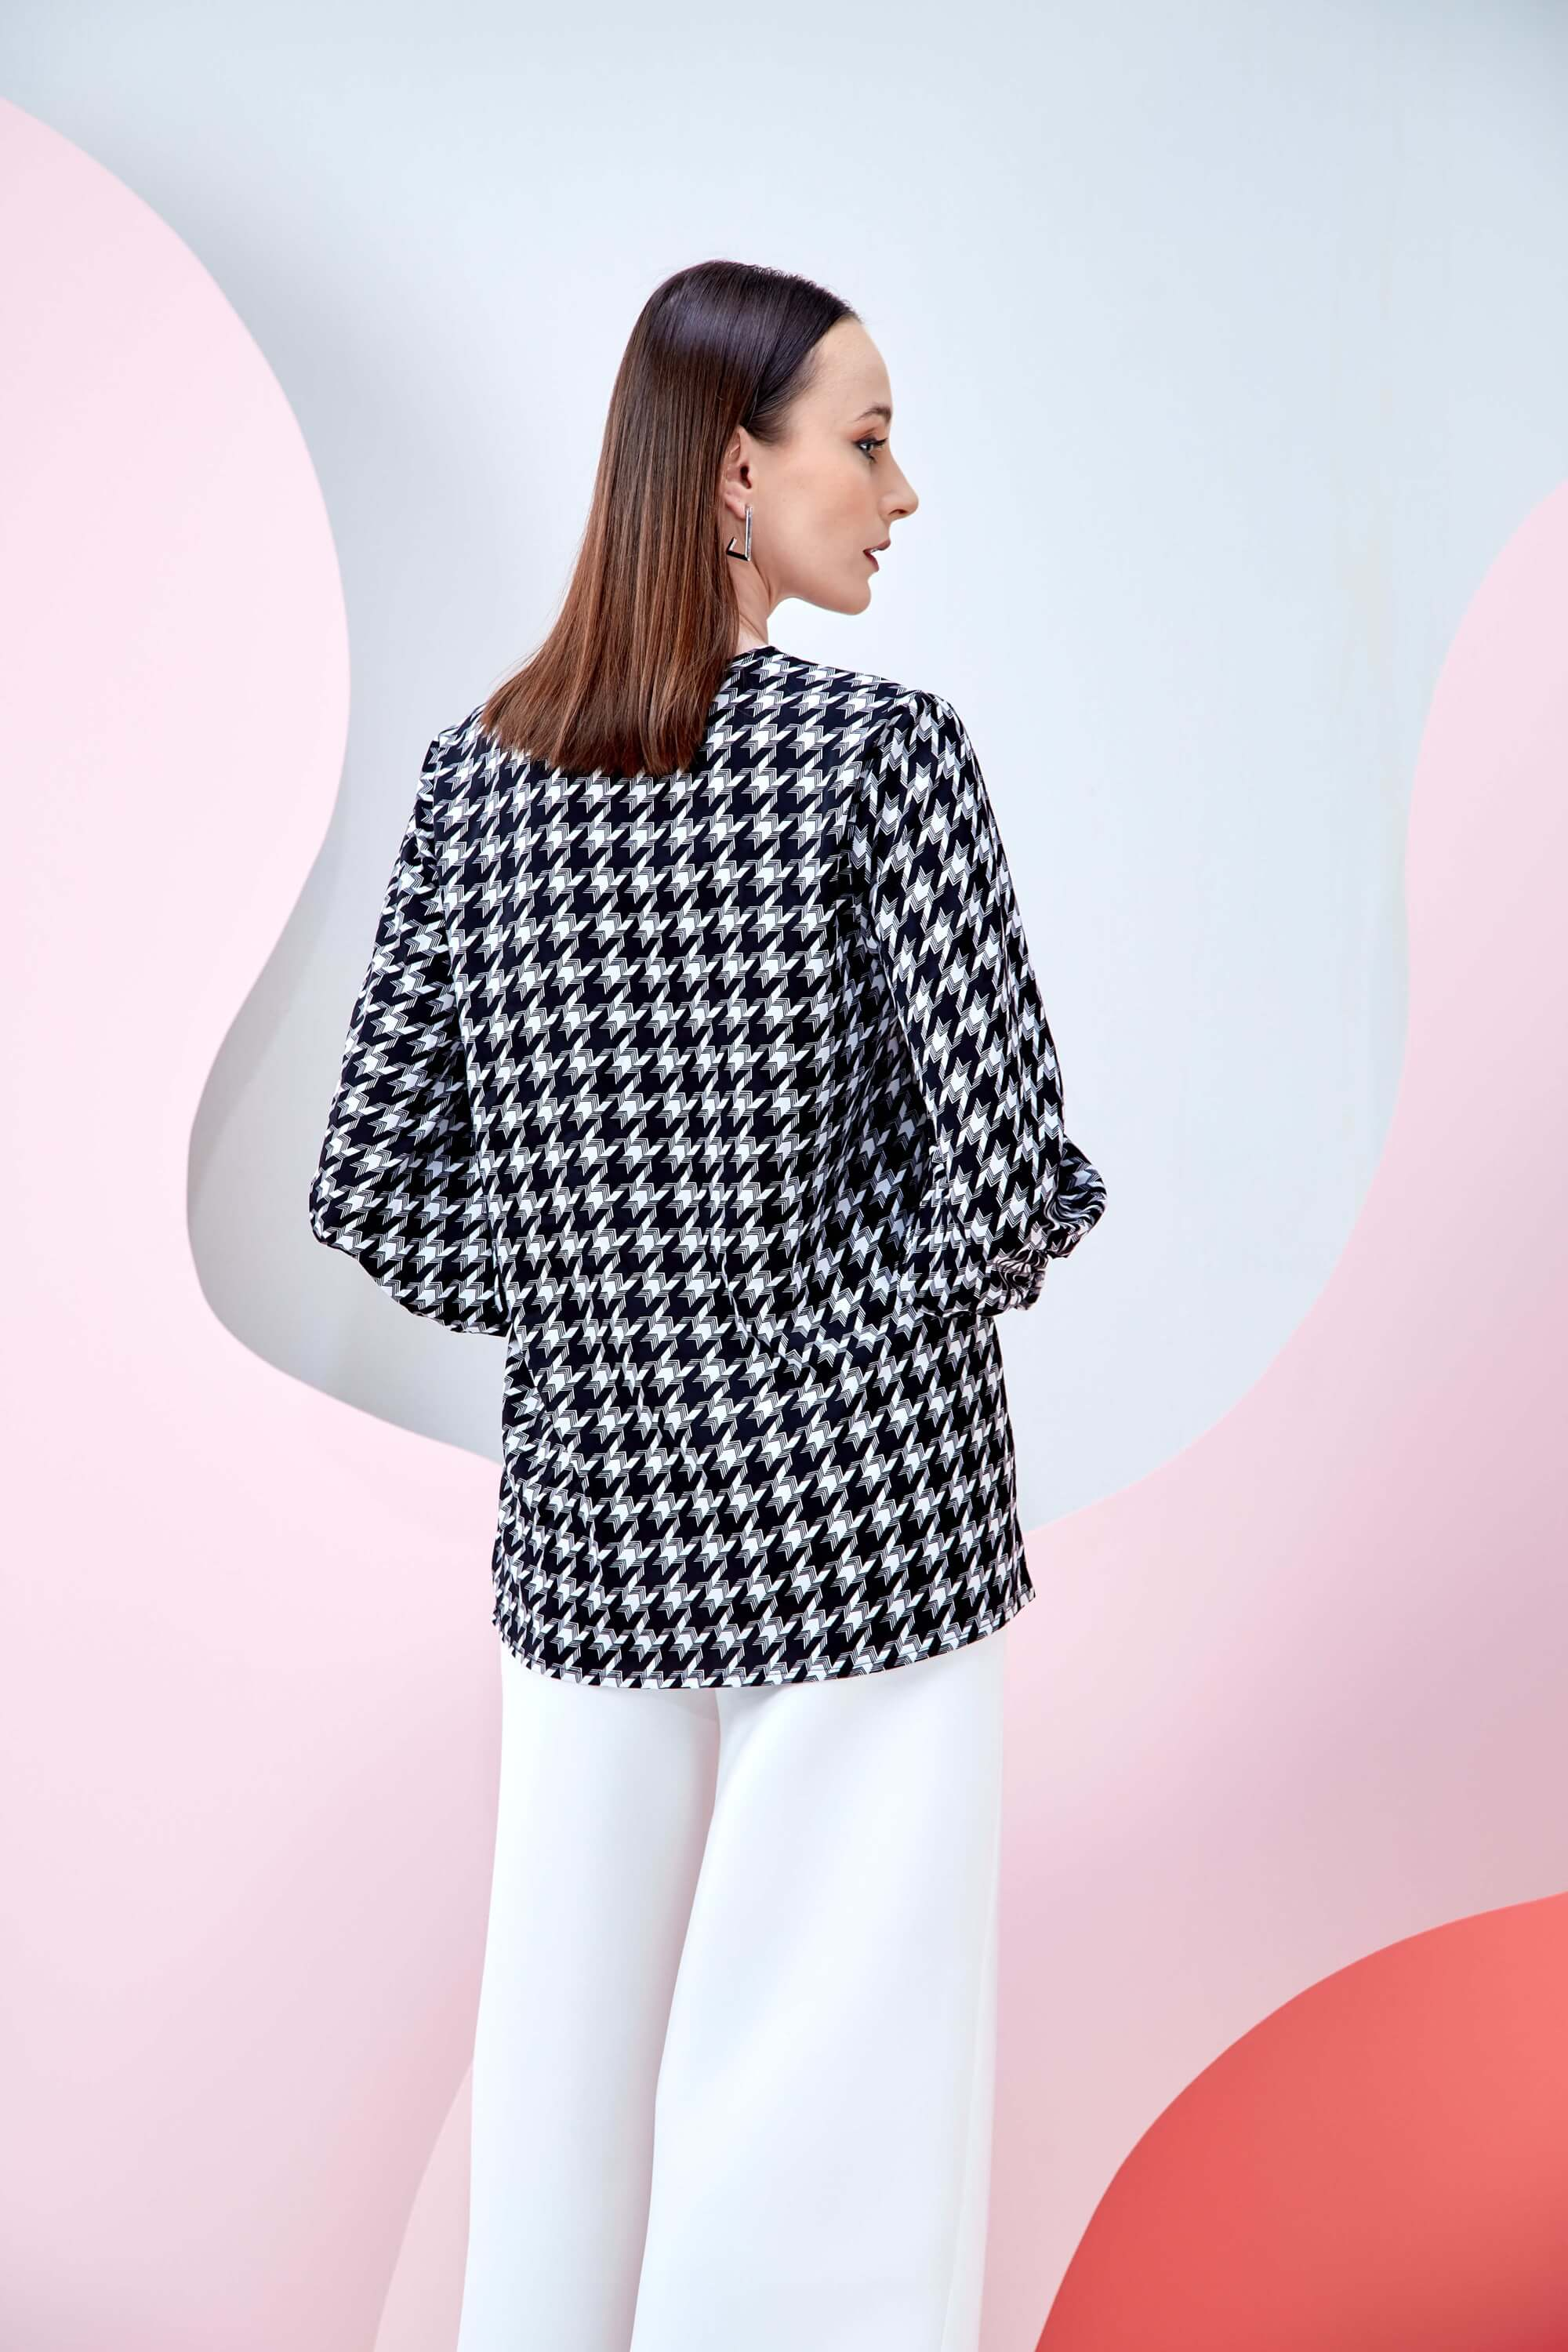 Wynna Black Houndstooth Blouse 3